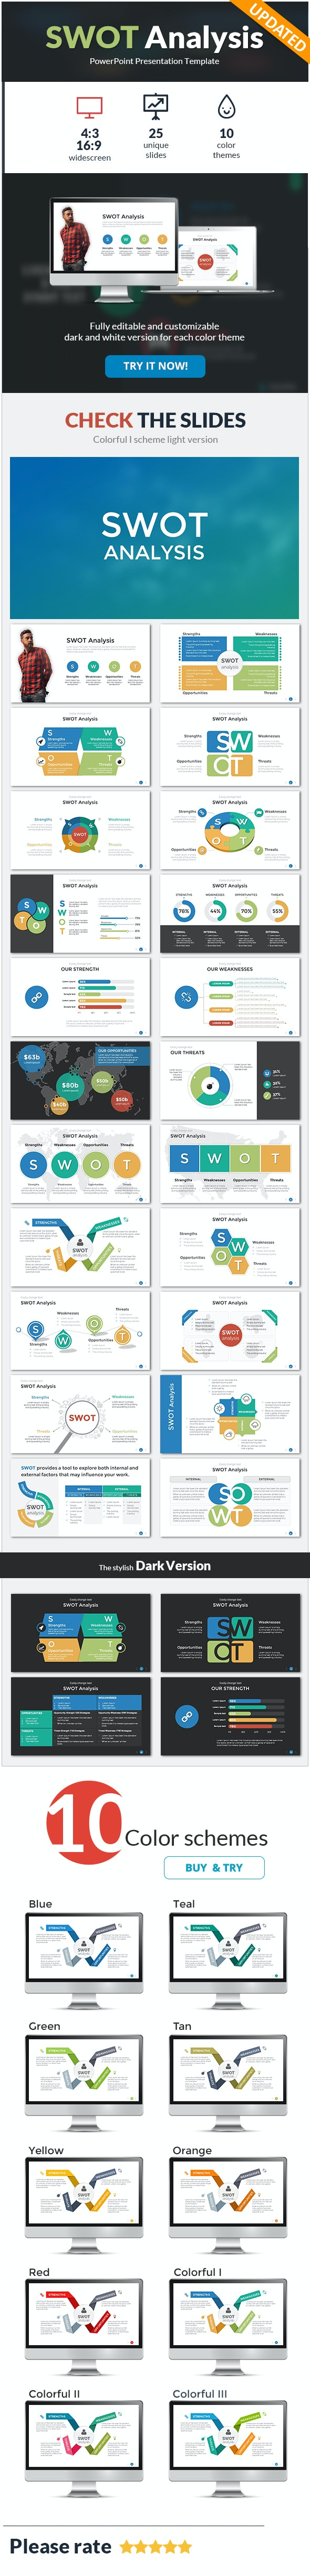 SWOT Analysis PowerPoint Template - PowerPoint Templates Presentation Templates